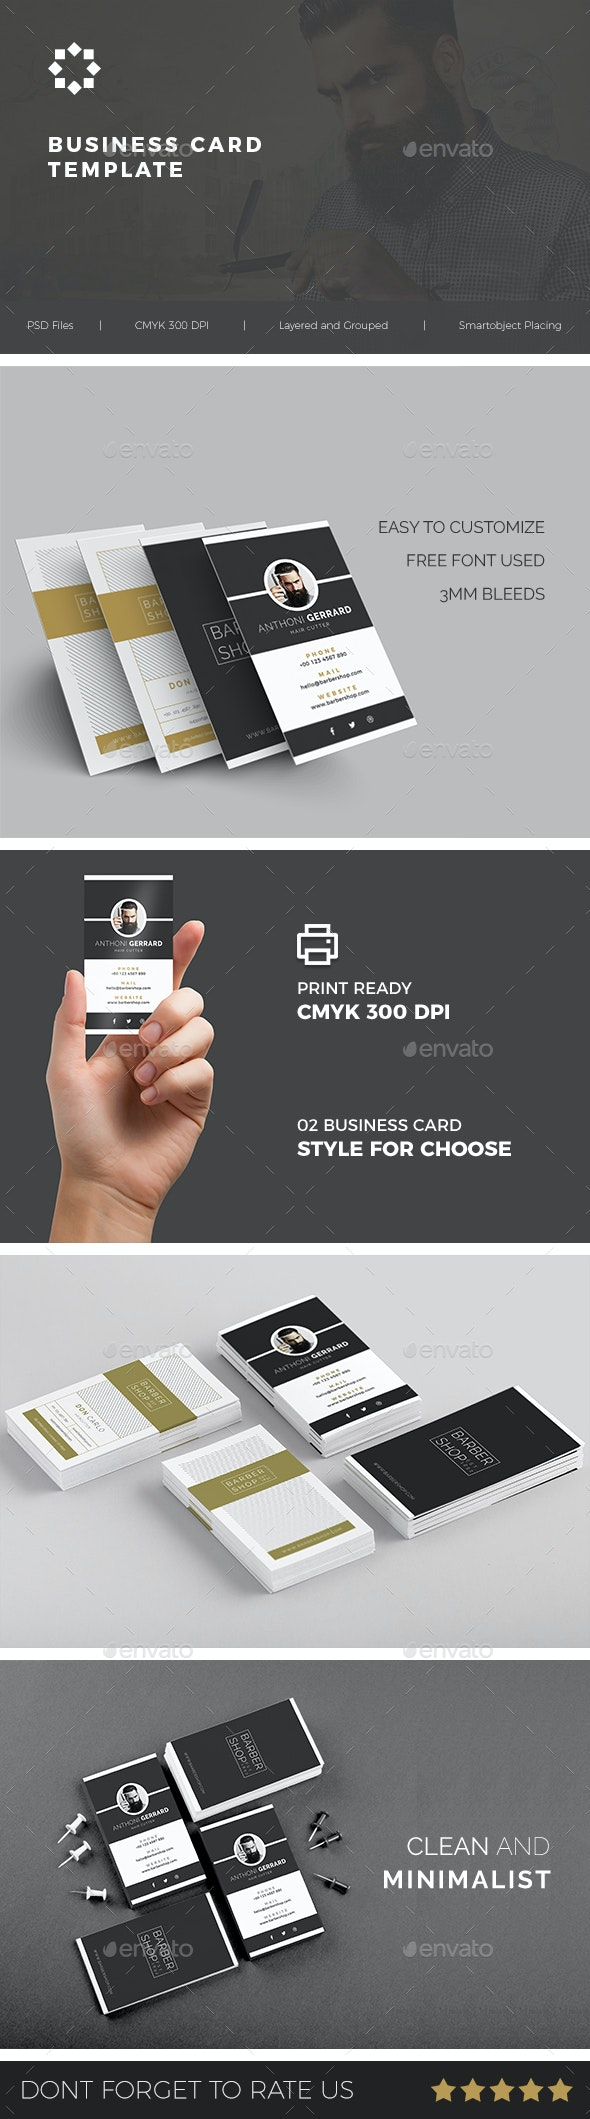 Business Card Vol. 01 - Business Cards Print Templates